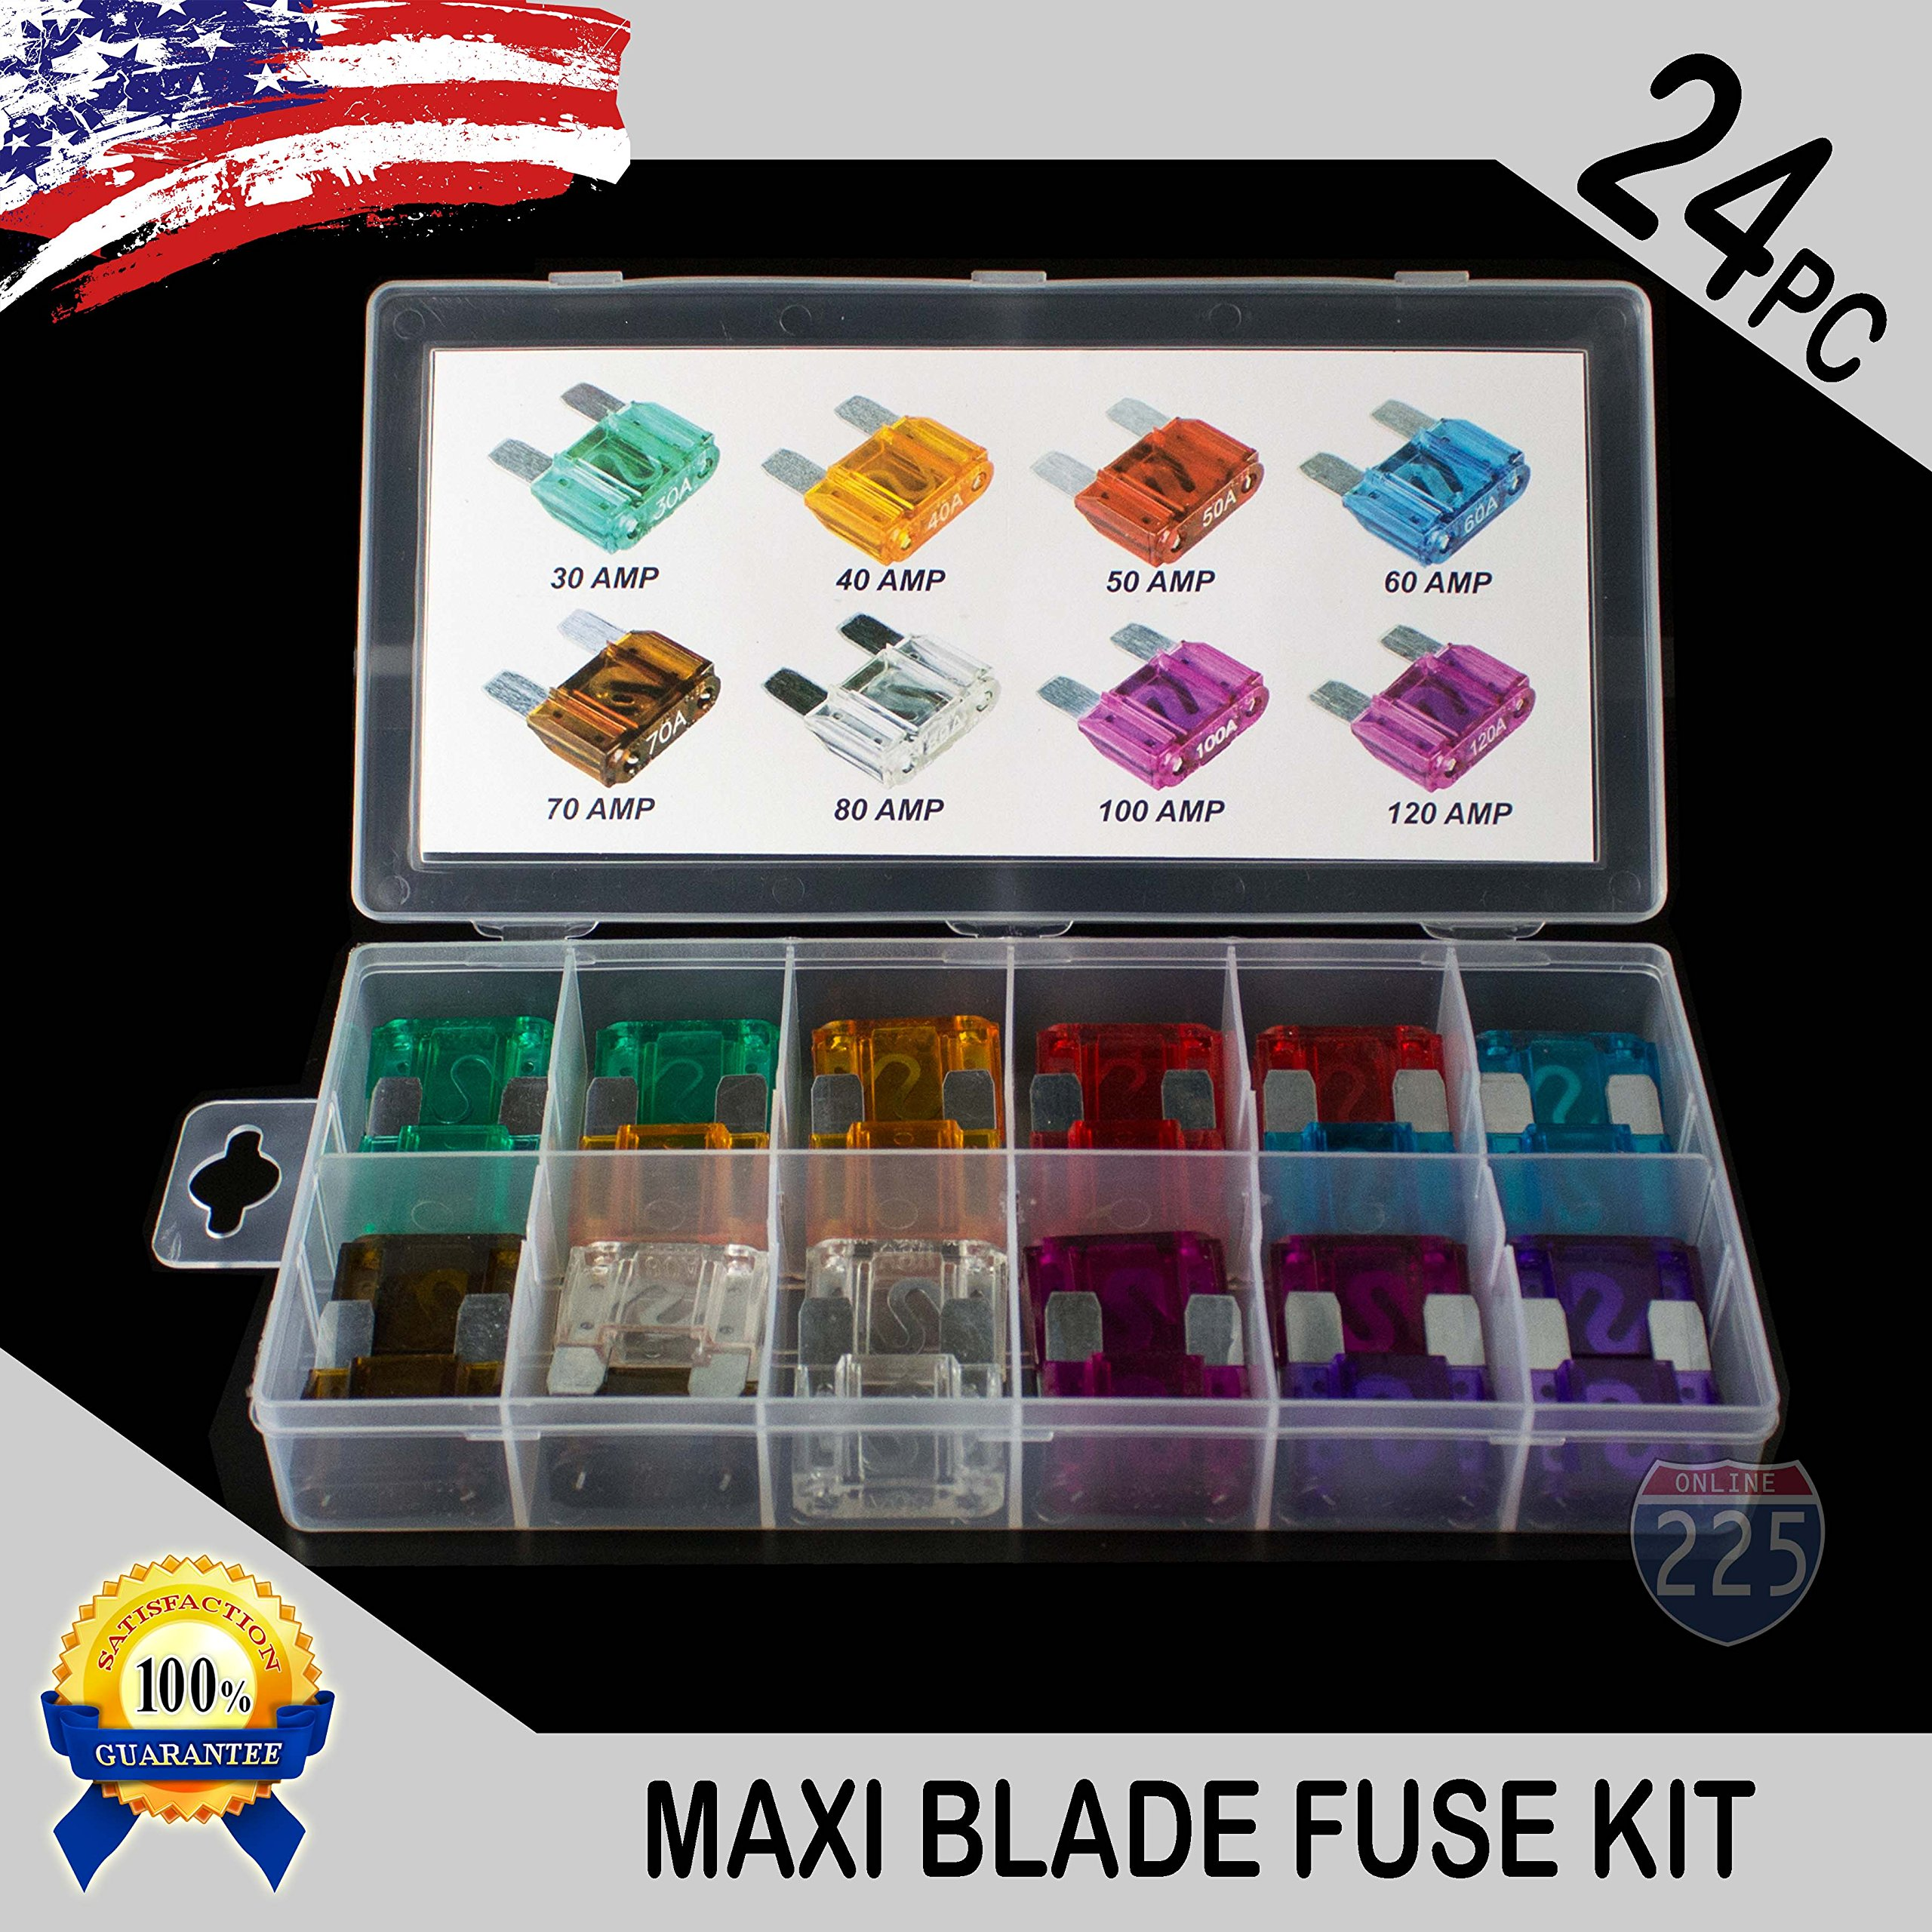 24 Pack MAXI / APX Blade Fuse Assortment Auto Car Truck Motorcycle SUV FUSES Kit